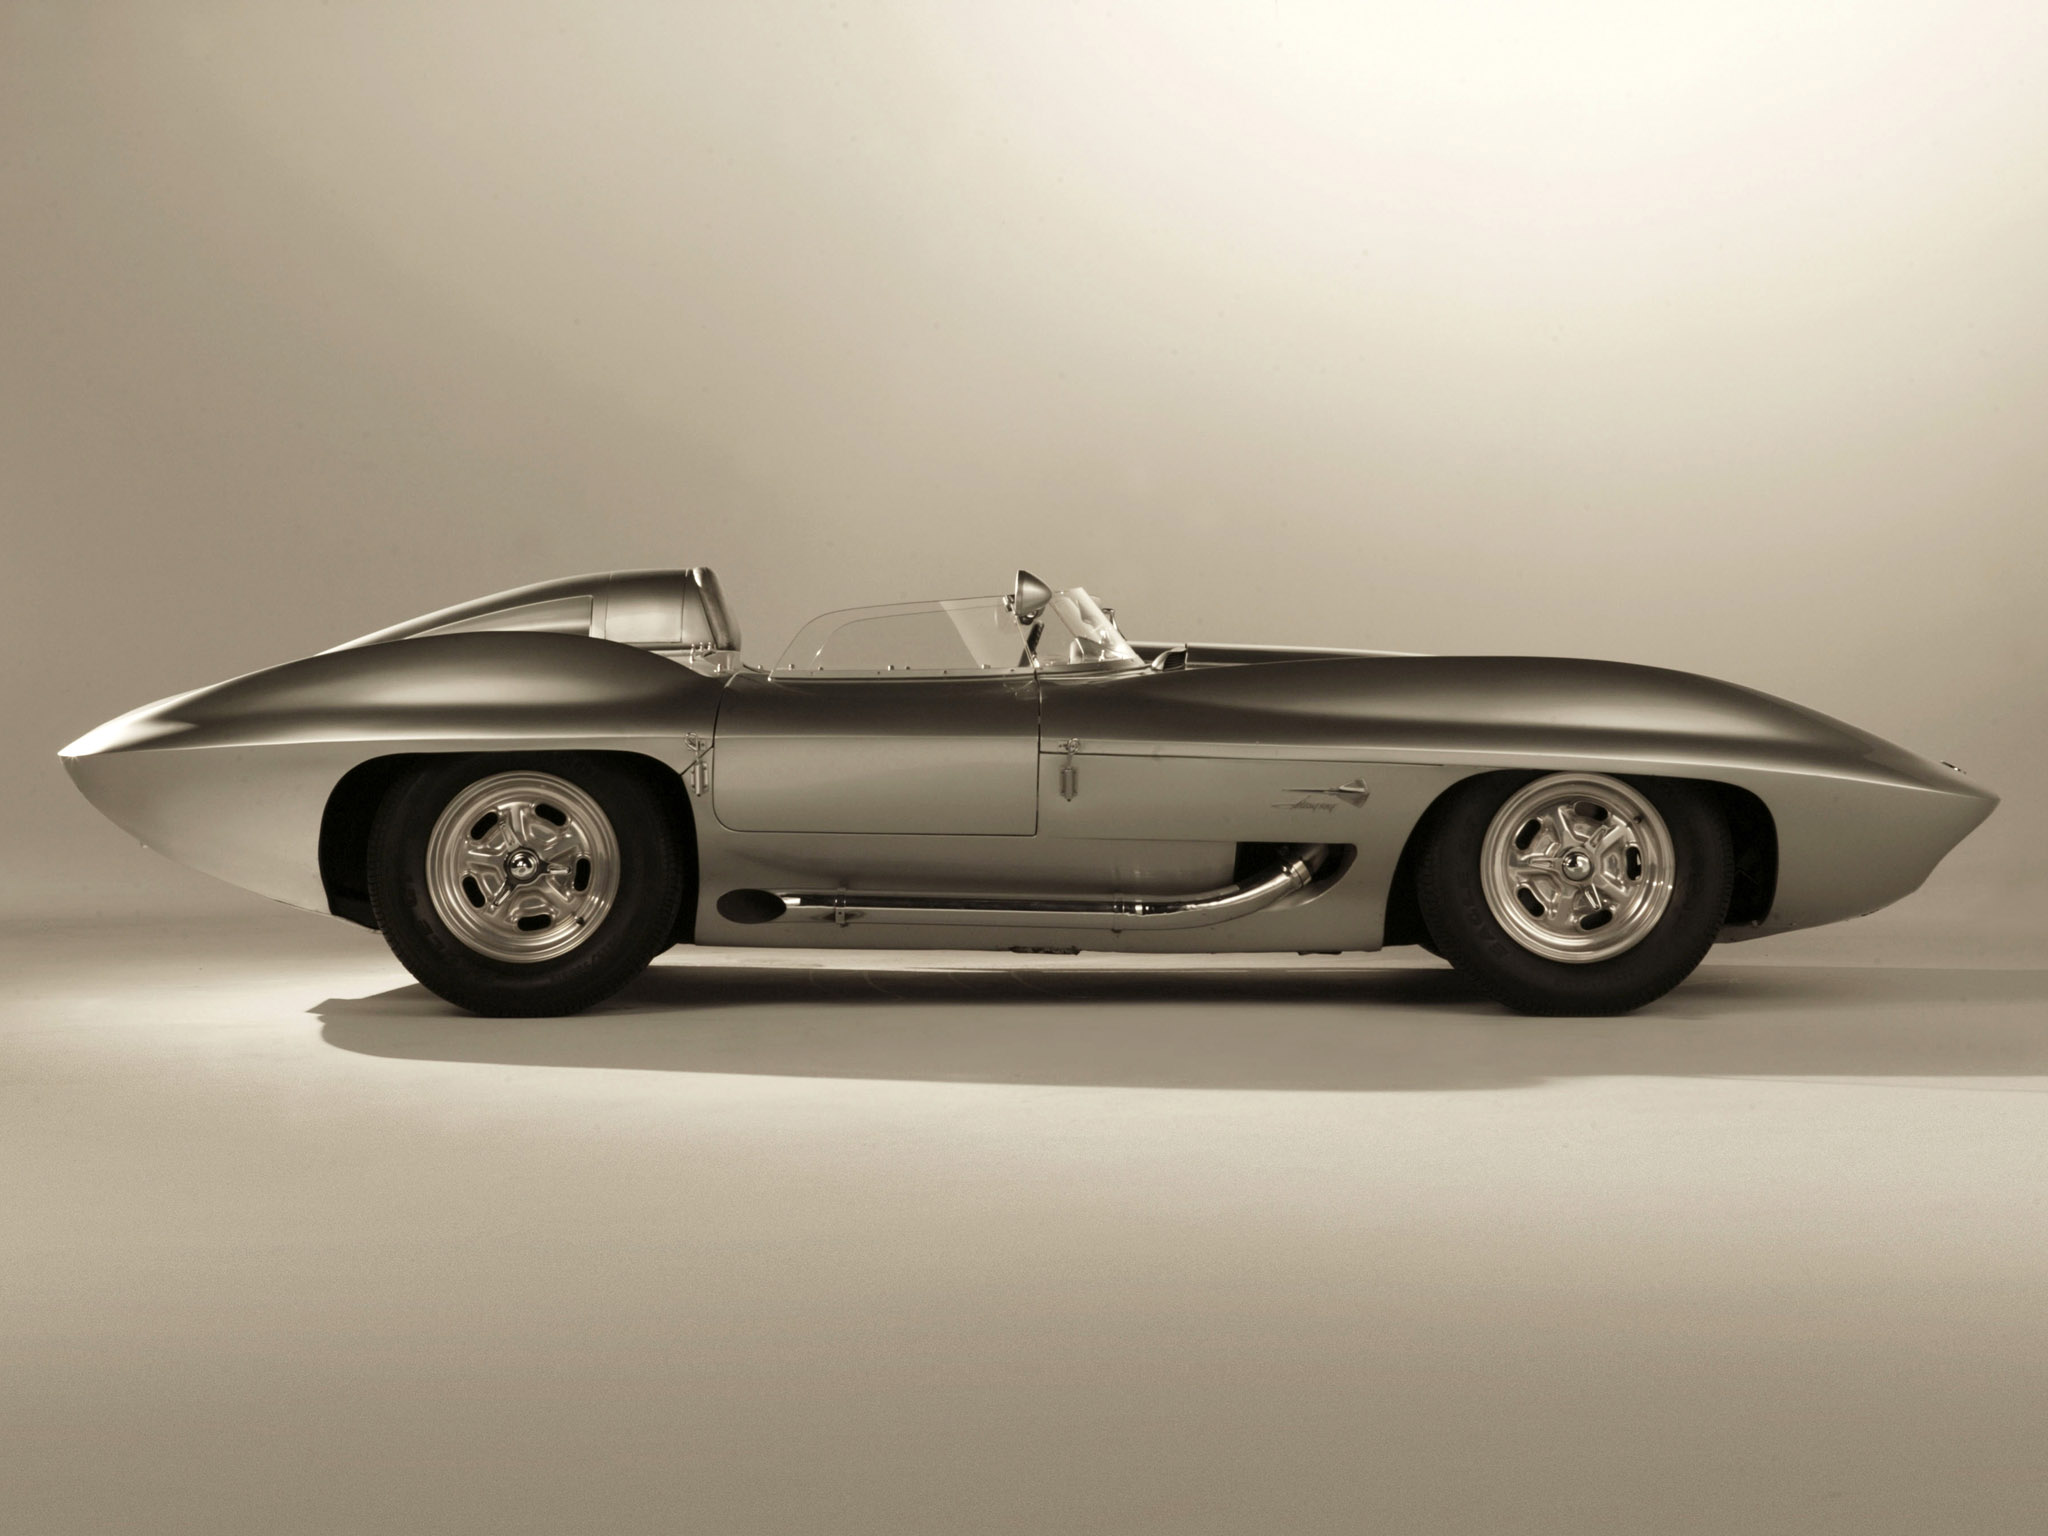 Diner Wallpapers in addition Volkswagen Karmann Ghia further Jaguar XK also Ford Custom Series as well Whale Beach. on gallery of 1950s cars